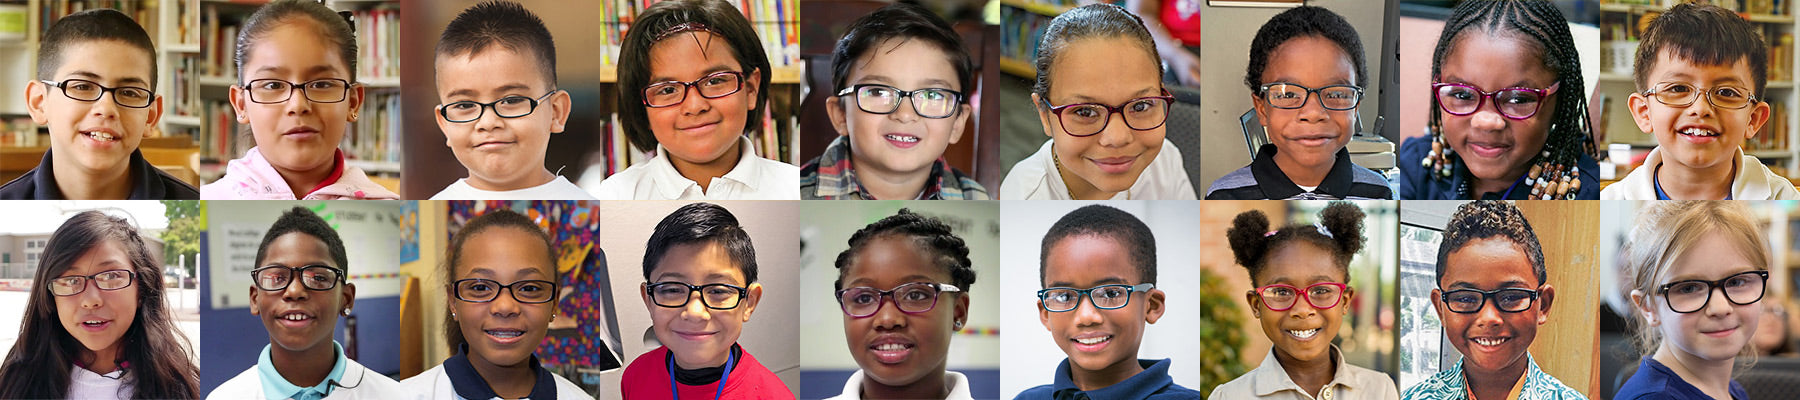 Jupitoo provided 1000 pairs of new glasses for needy children